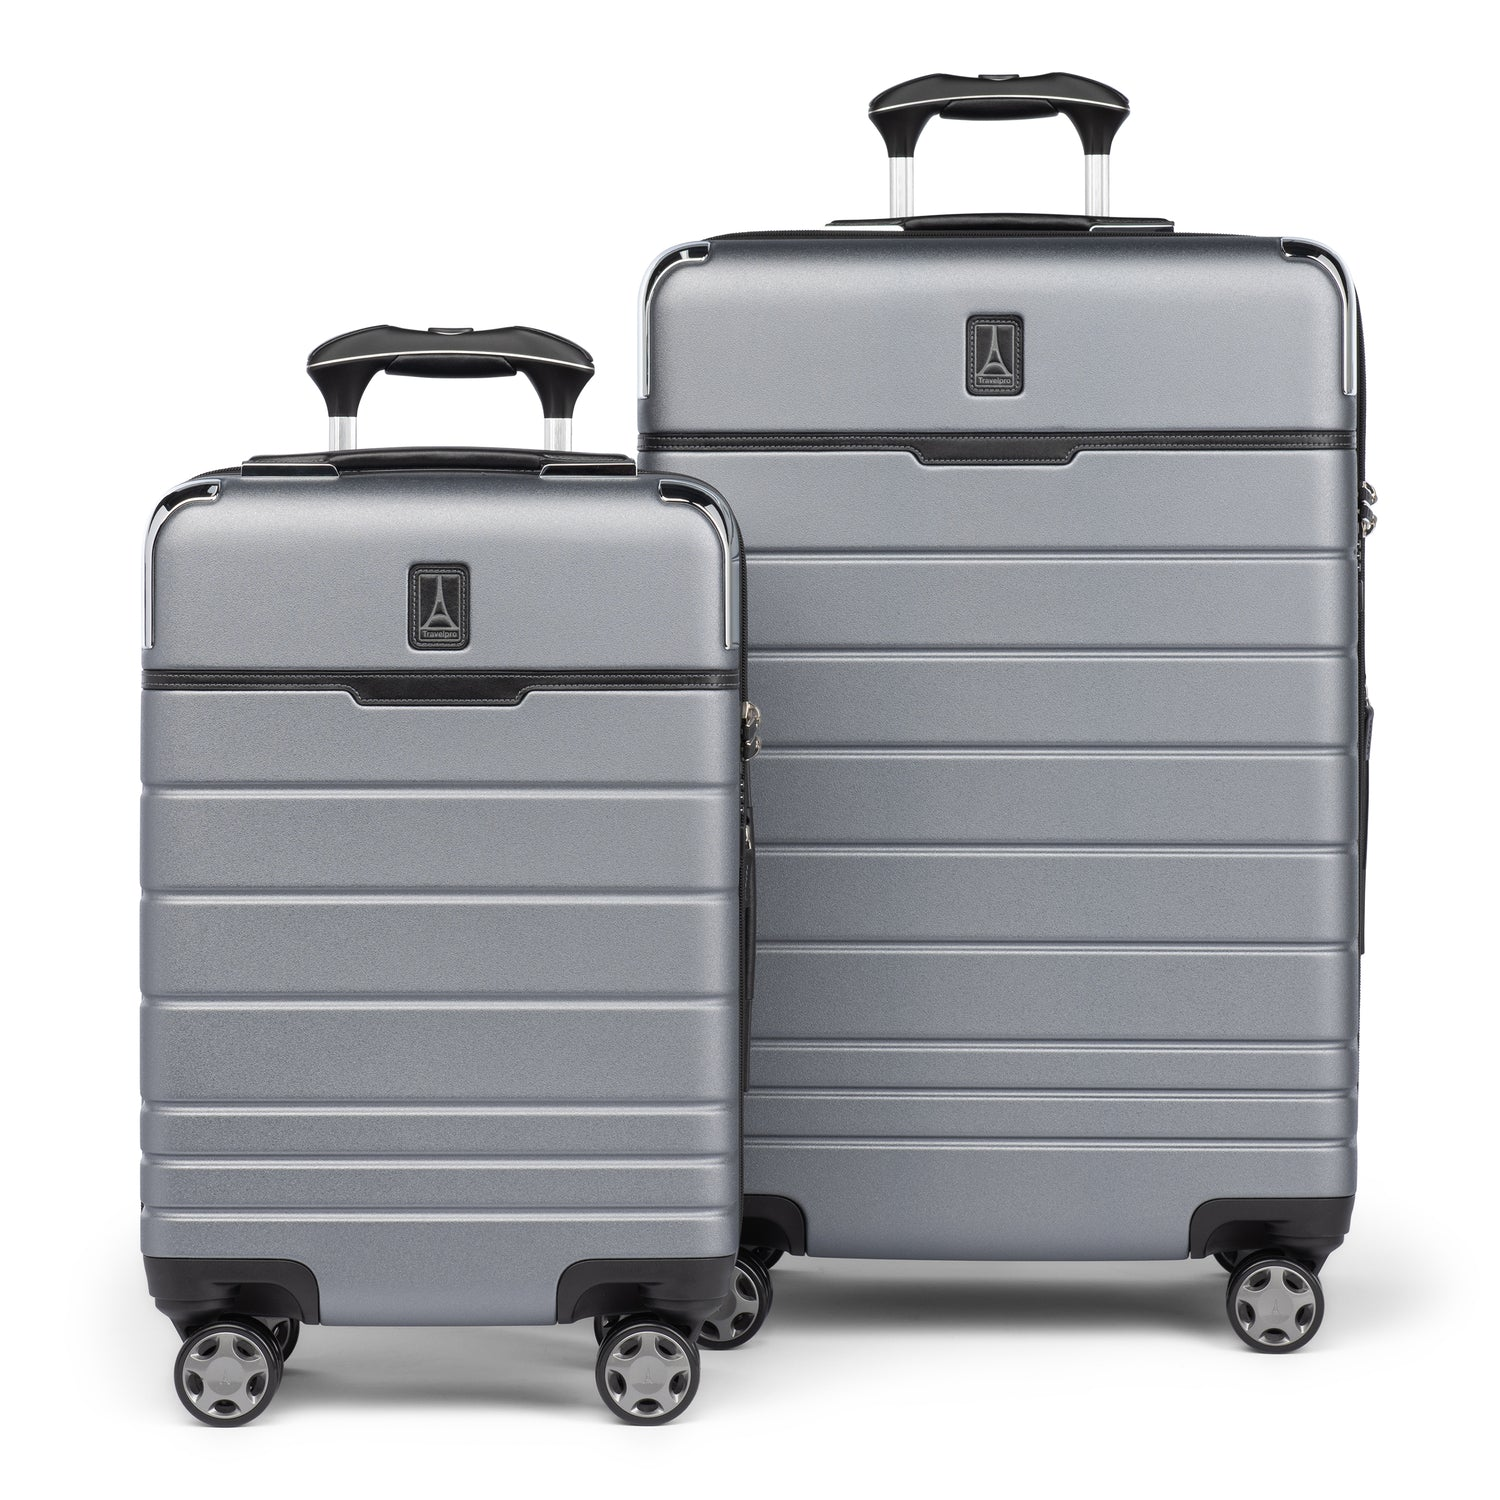 Travelpro® x Travel + Leisure® Compact Carry-on/Checked Medium Spinner - Luggage Set